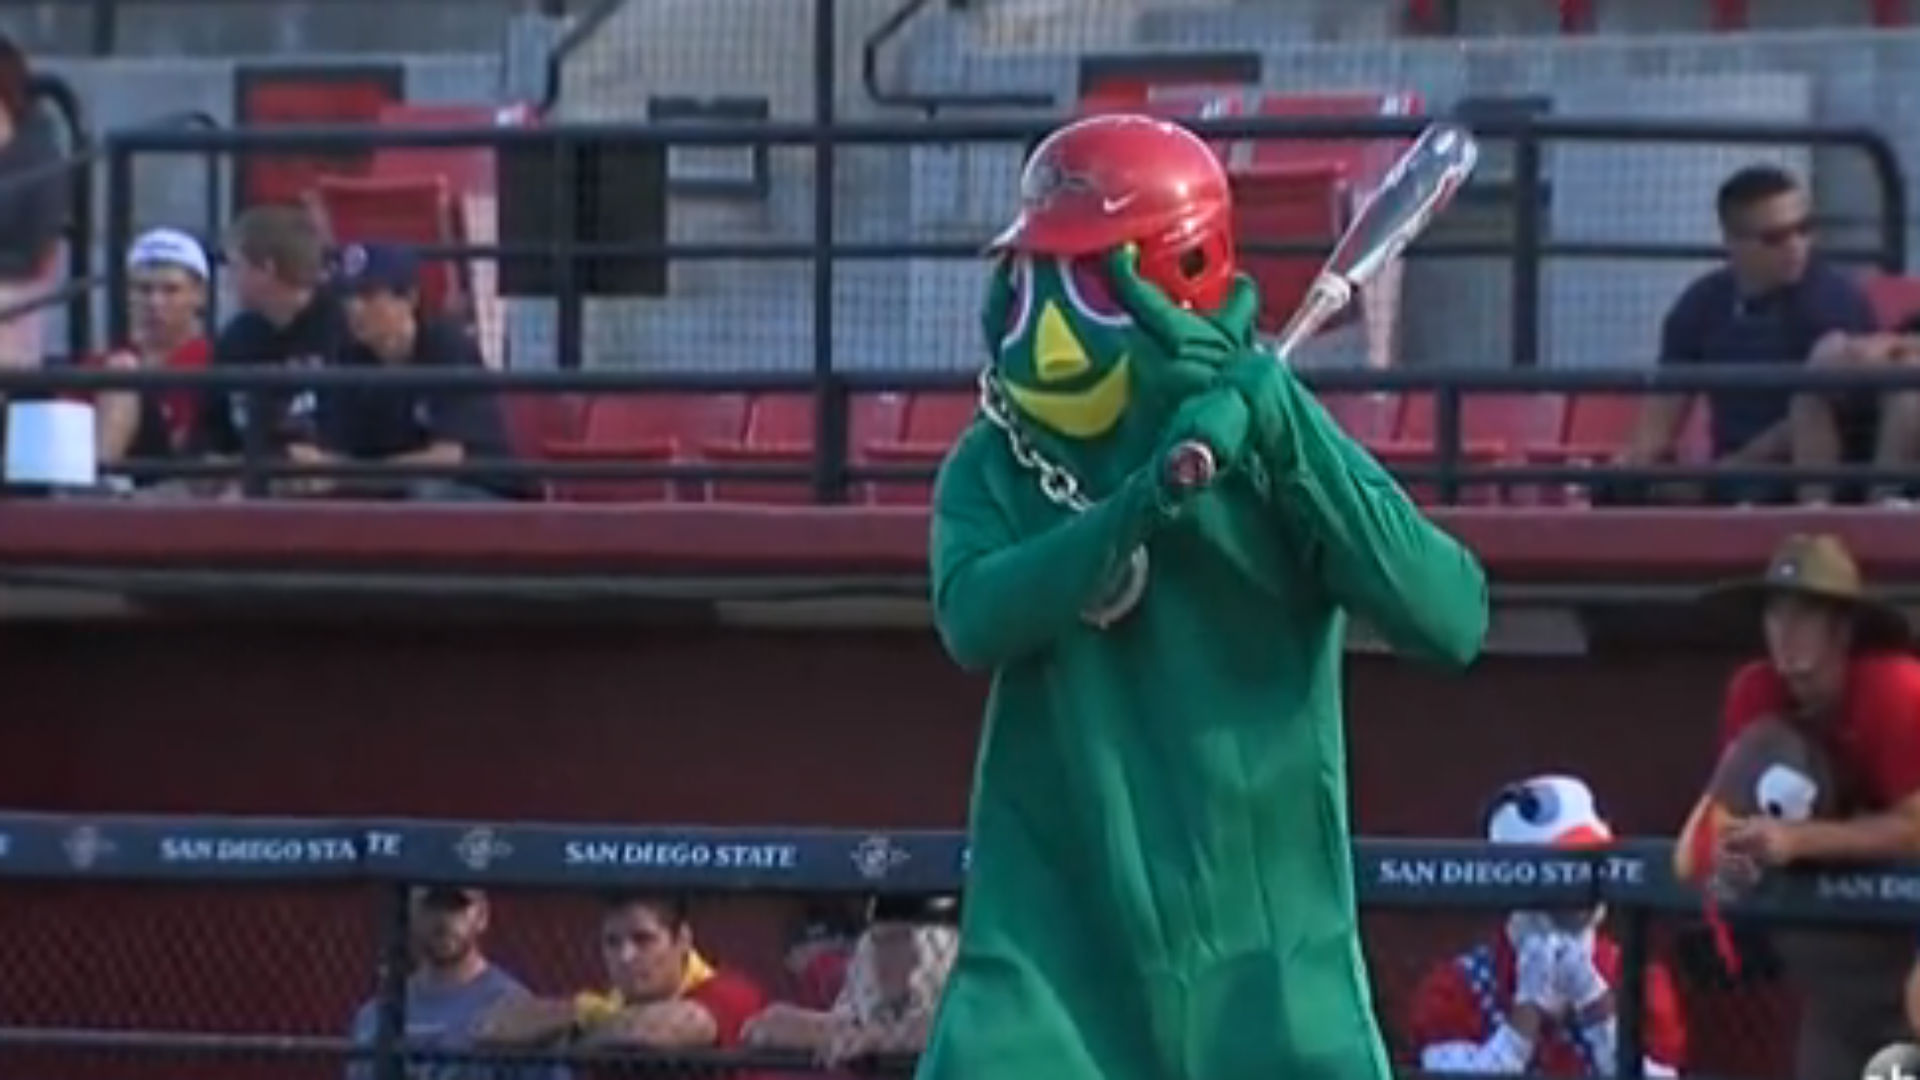 san diego state baseball team plays game in halloween costumes | mlb